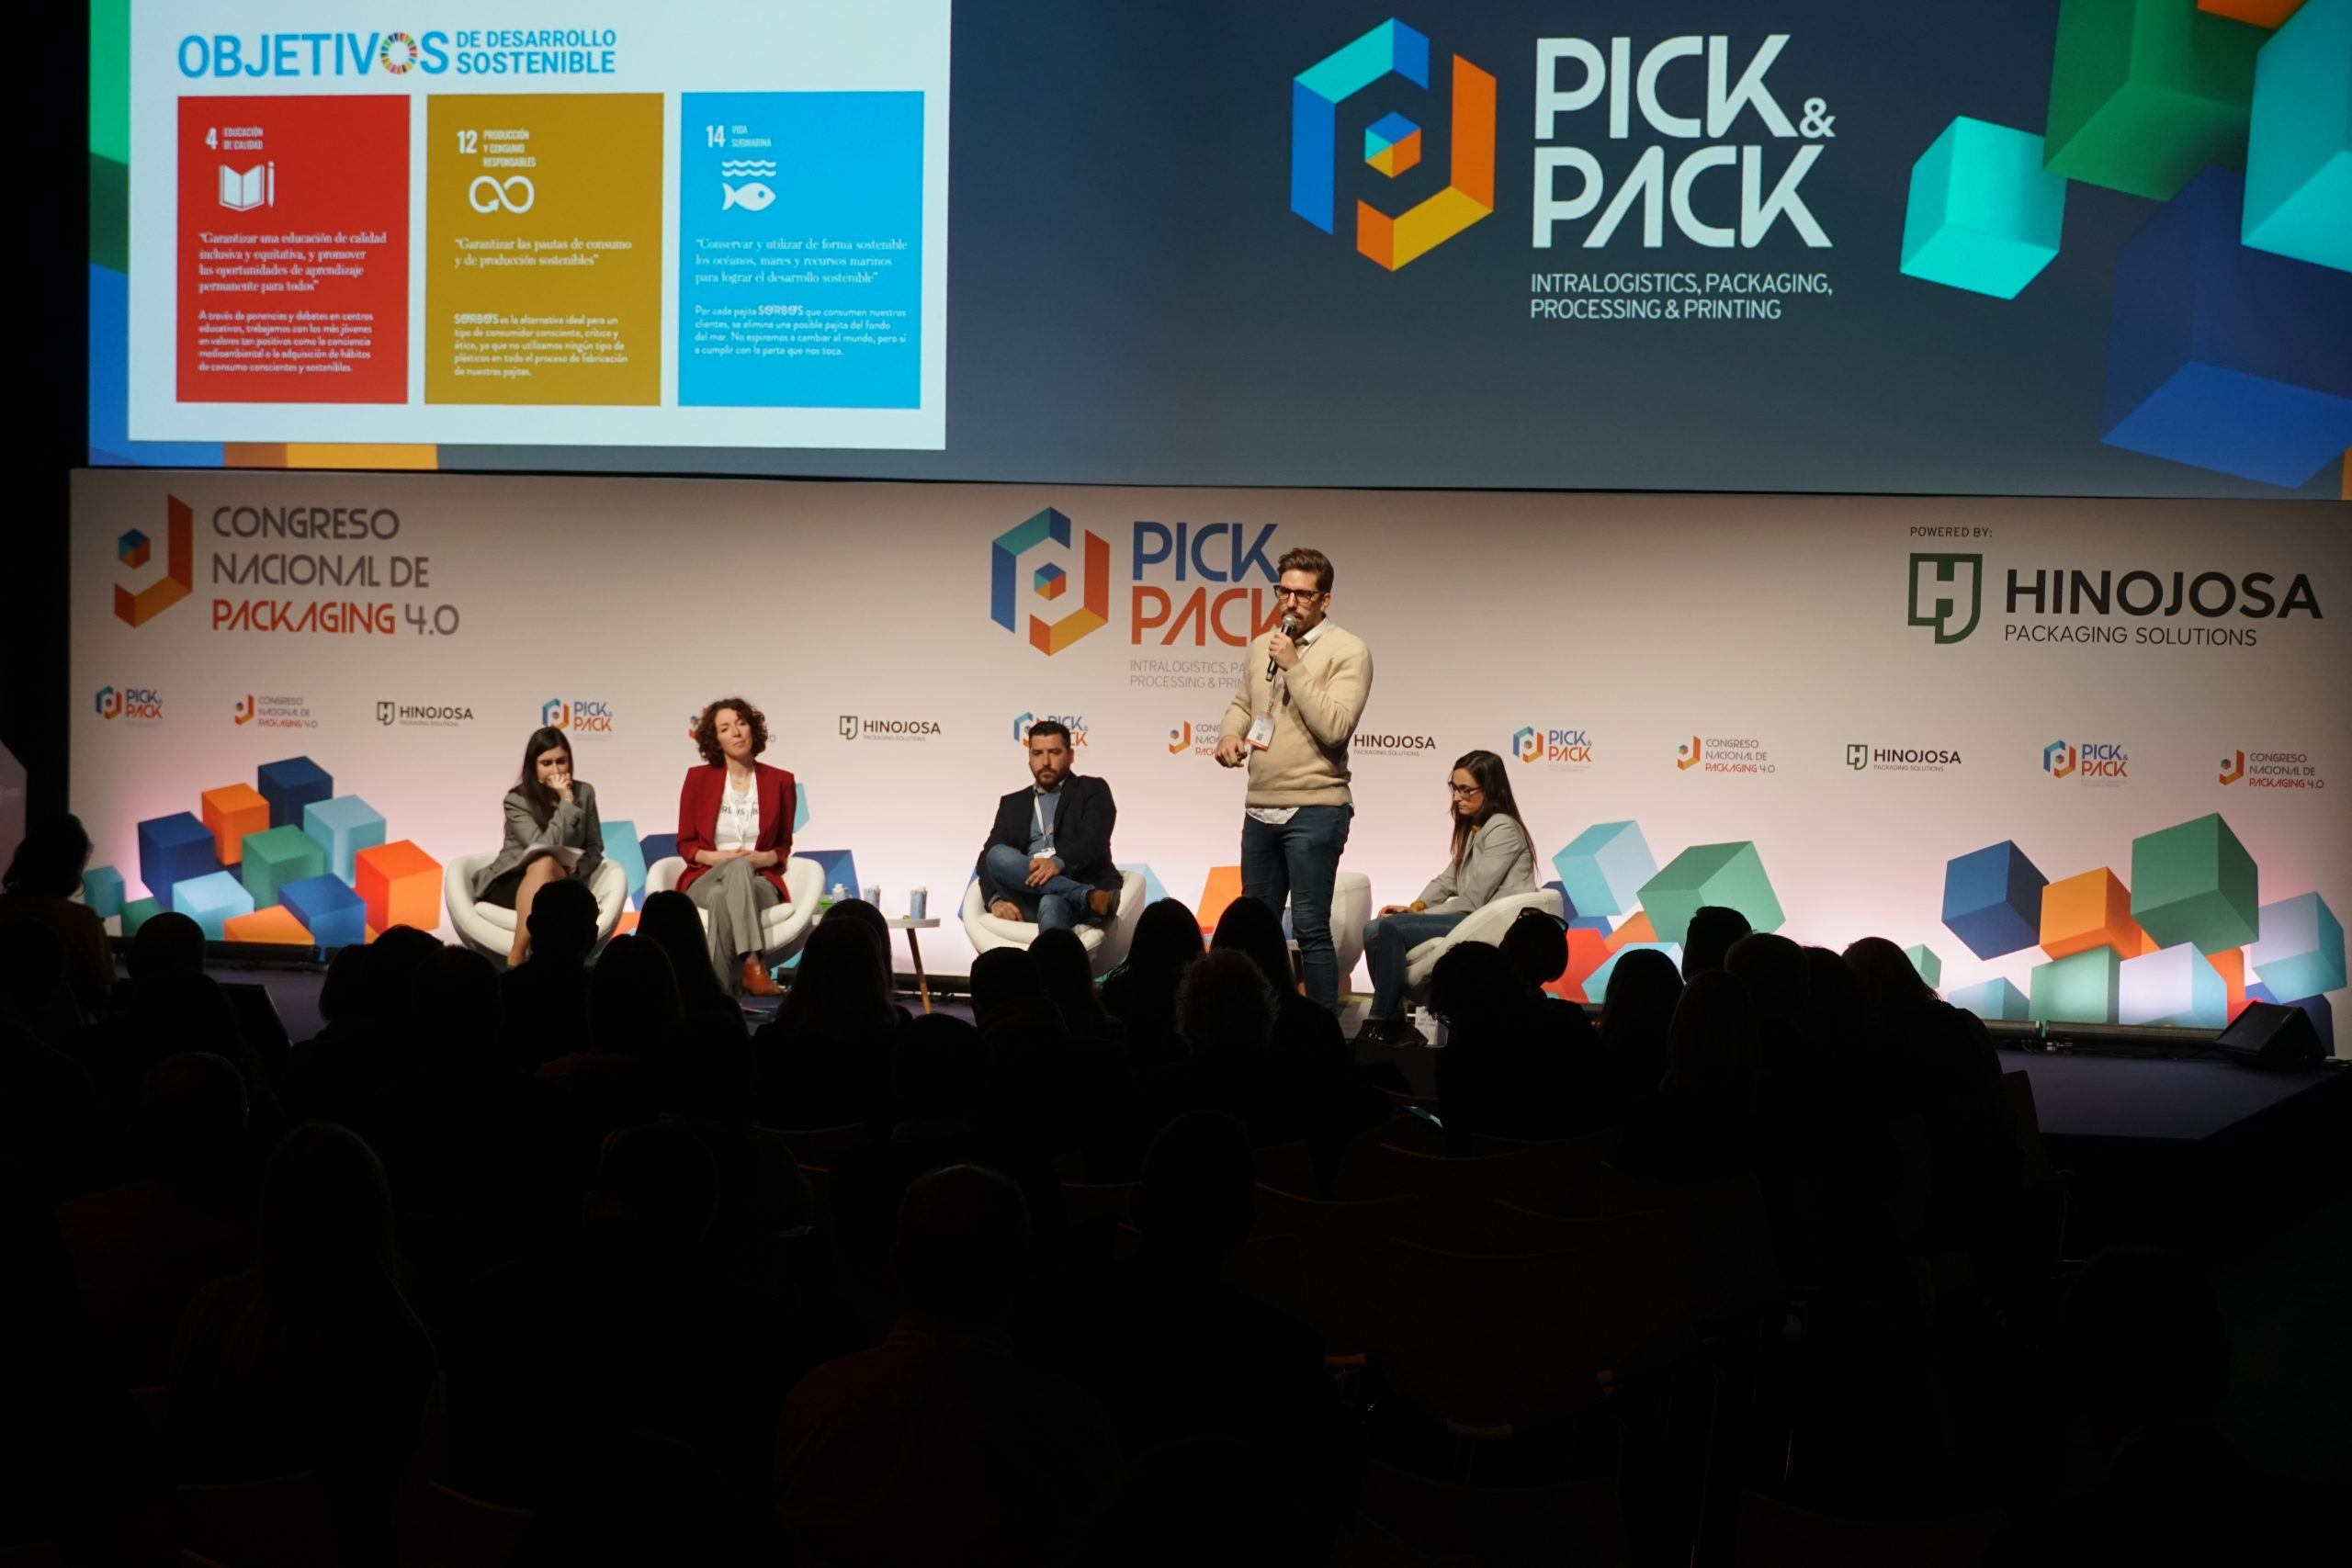 El impacto del e-commerce sigue siendo un reto en la industria del packaging y de la intralogística